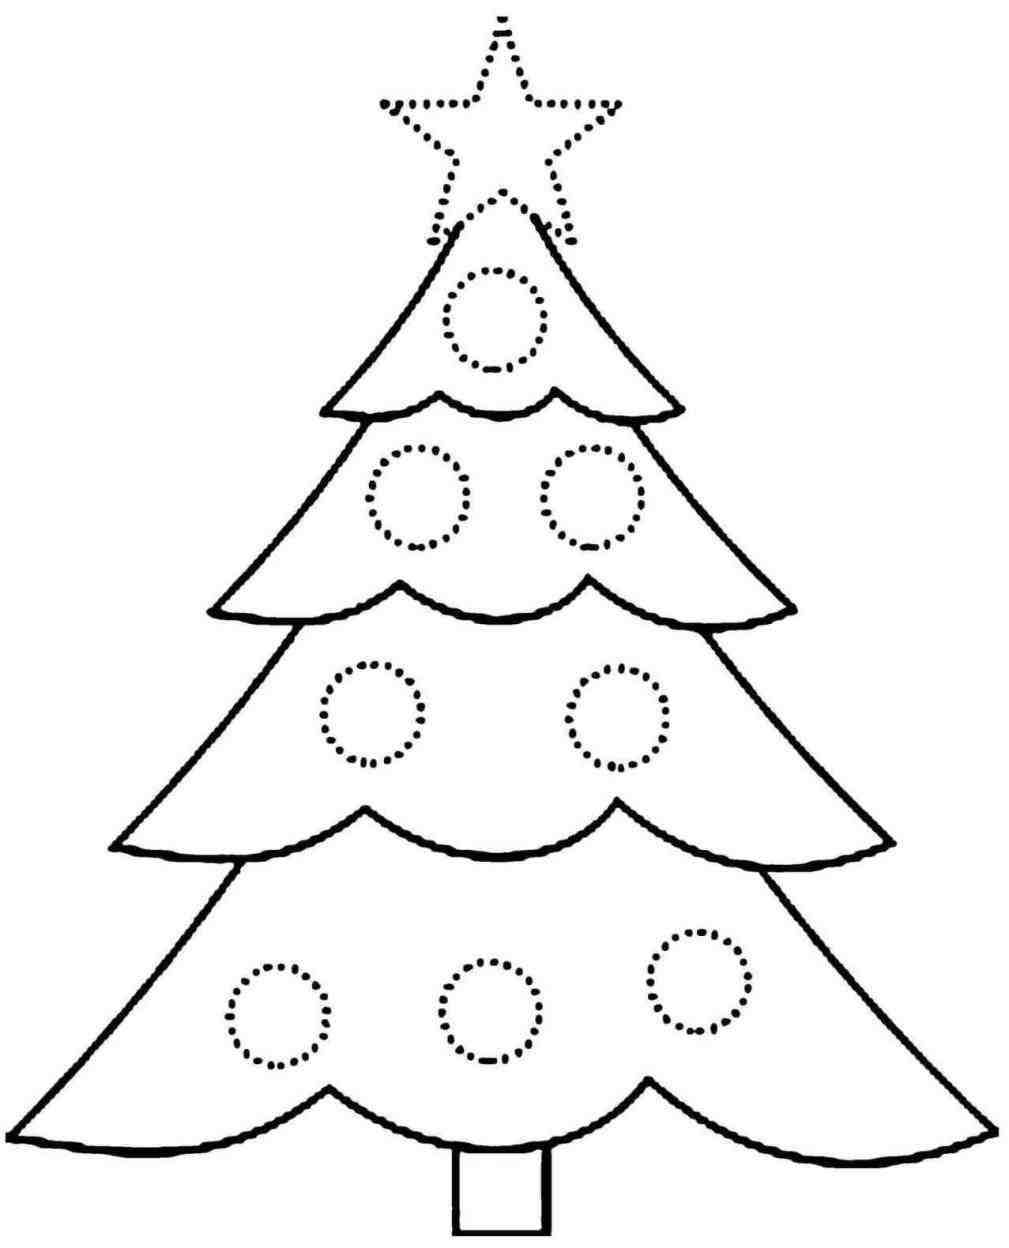 1009x1248 How To Draw A Tree Step By Step Tutorial With Photos Showing How